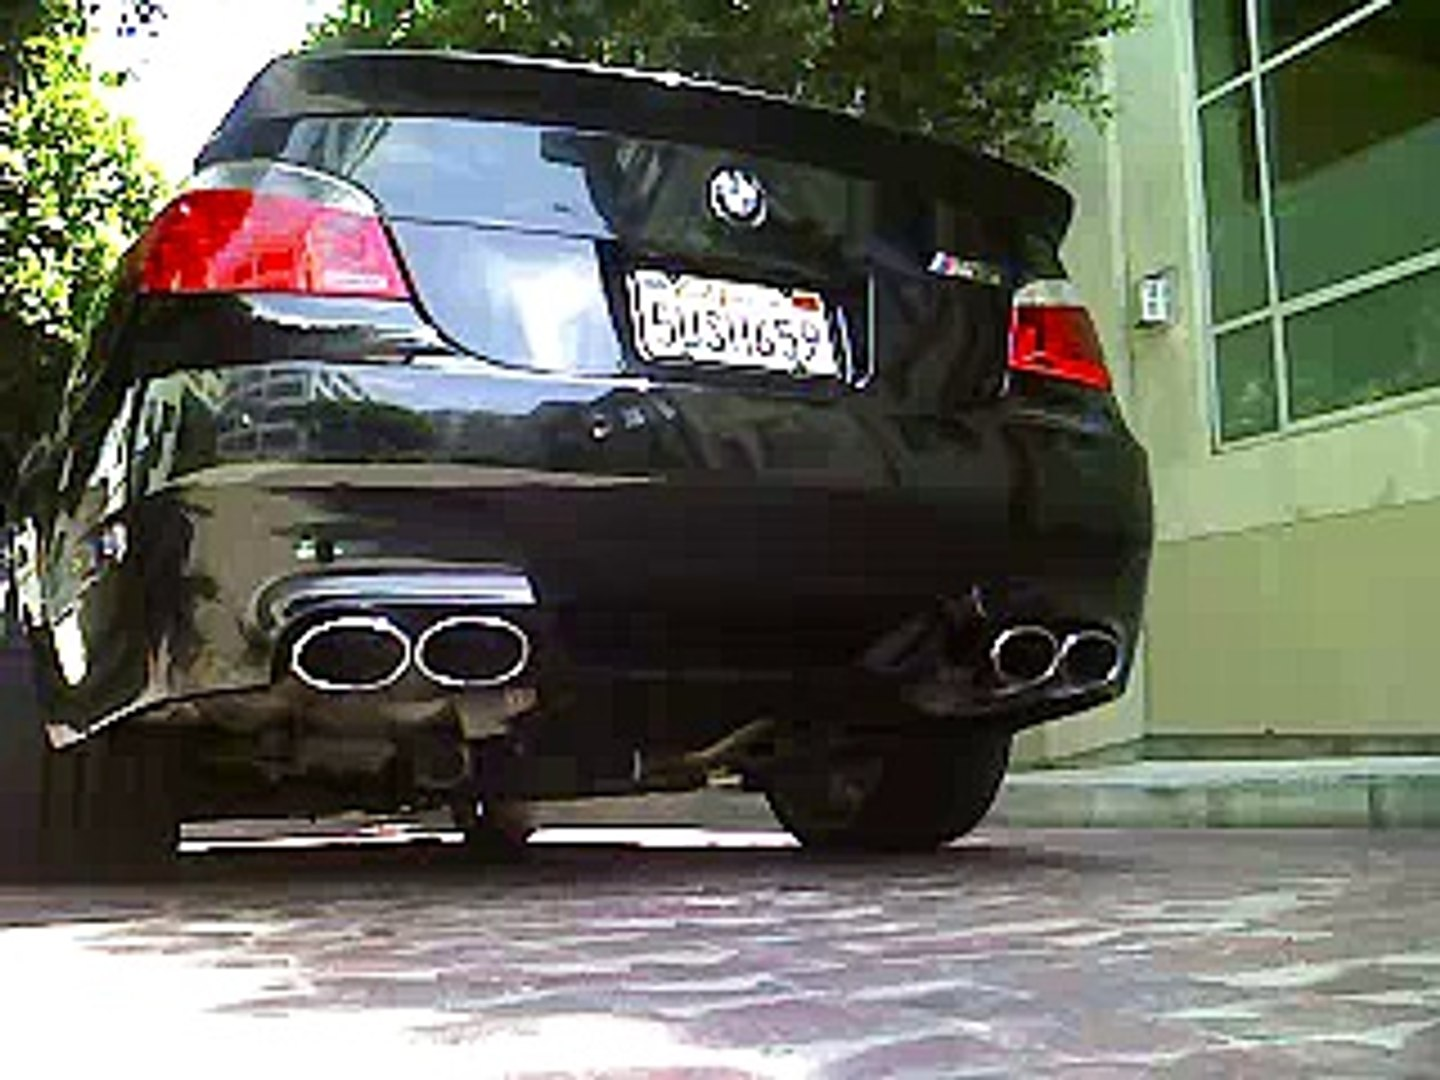 Eisenmann Race Exhaust On Bmw E60 M5 Great Sound Dailymotion Video